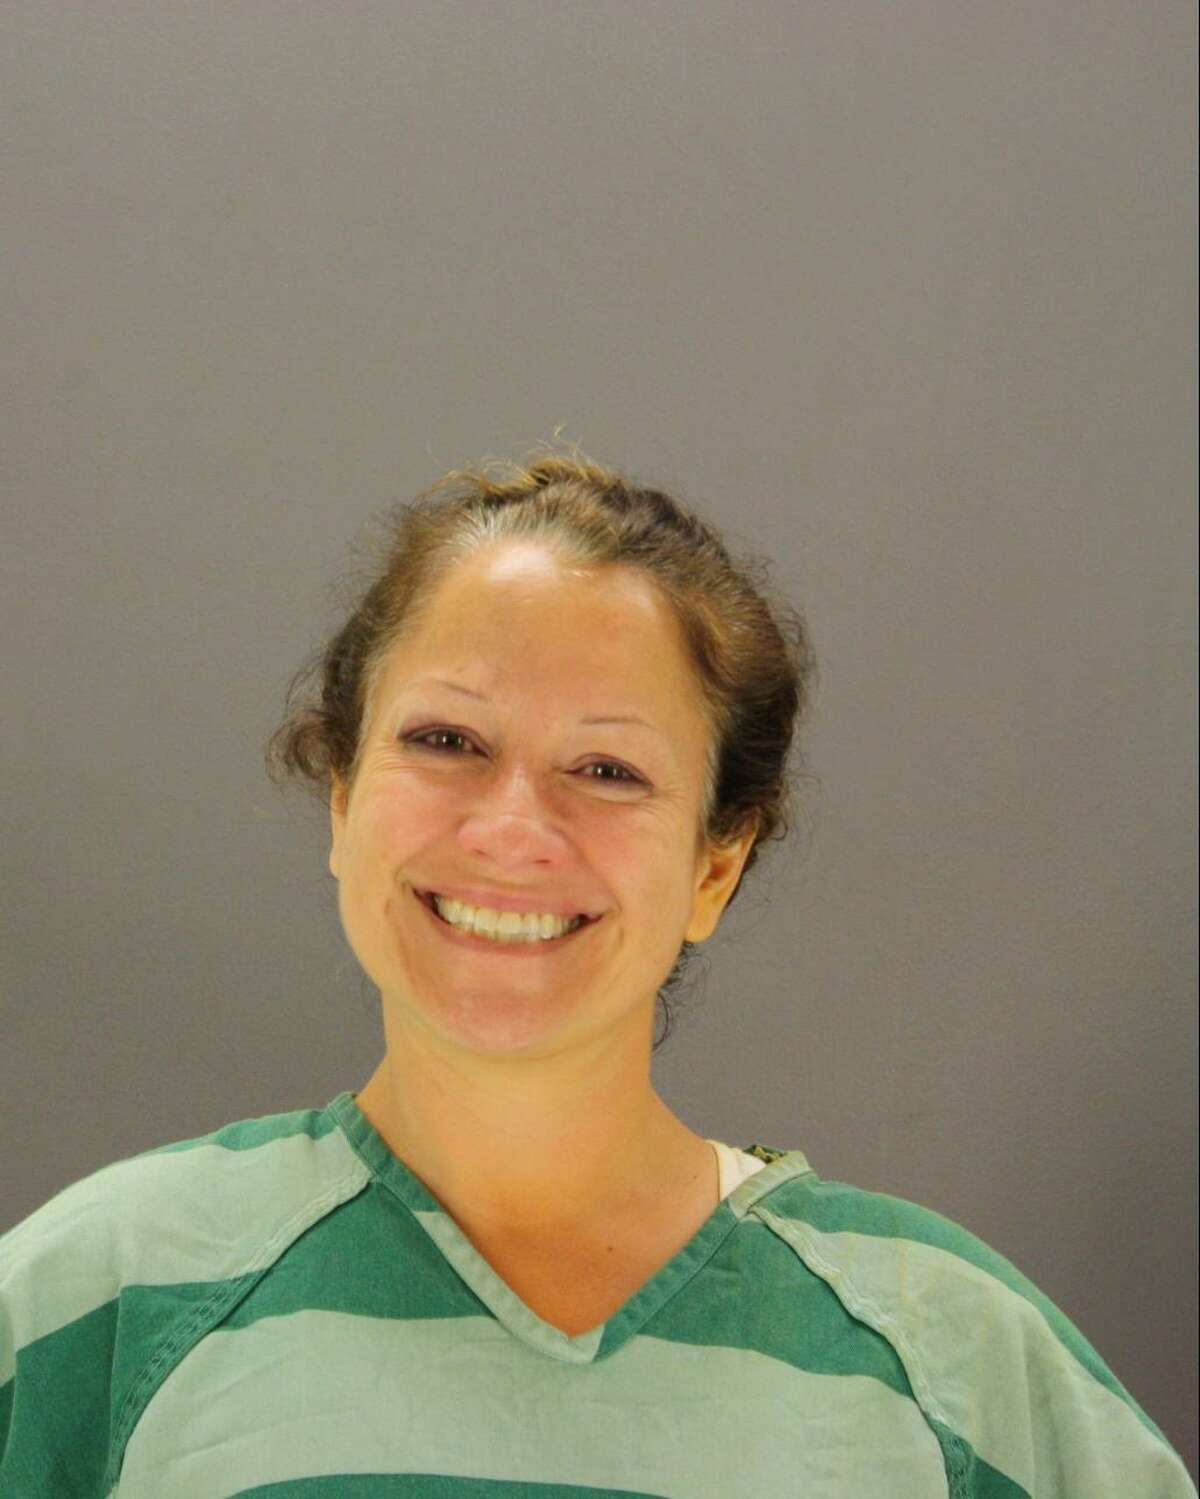 Dallas woman Nancy Suzanne Duarte, whose smiling mugshot made the rounds on social media this week, tried to burn down a yoga studio Saturday in order to